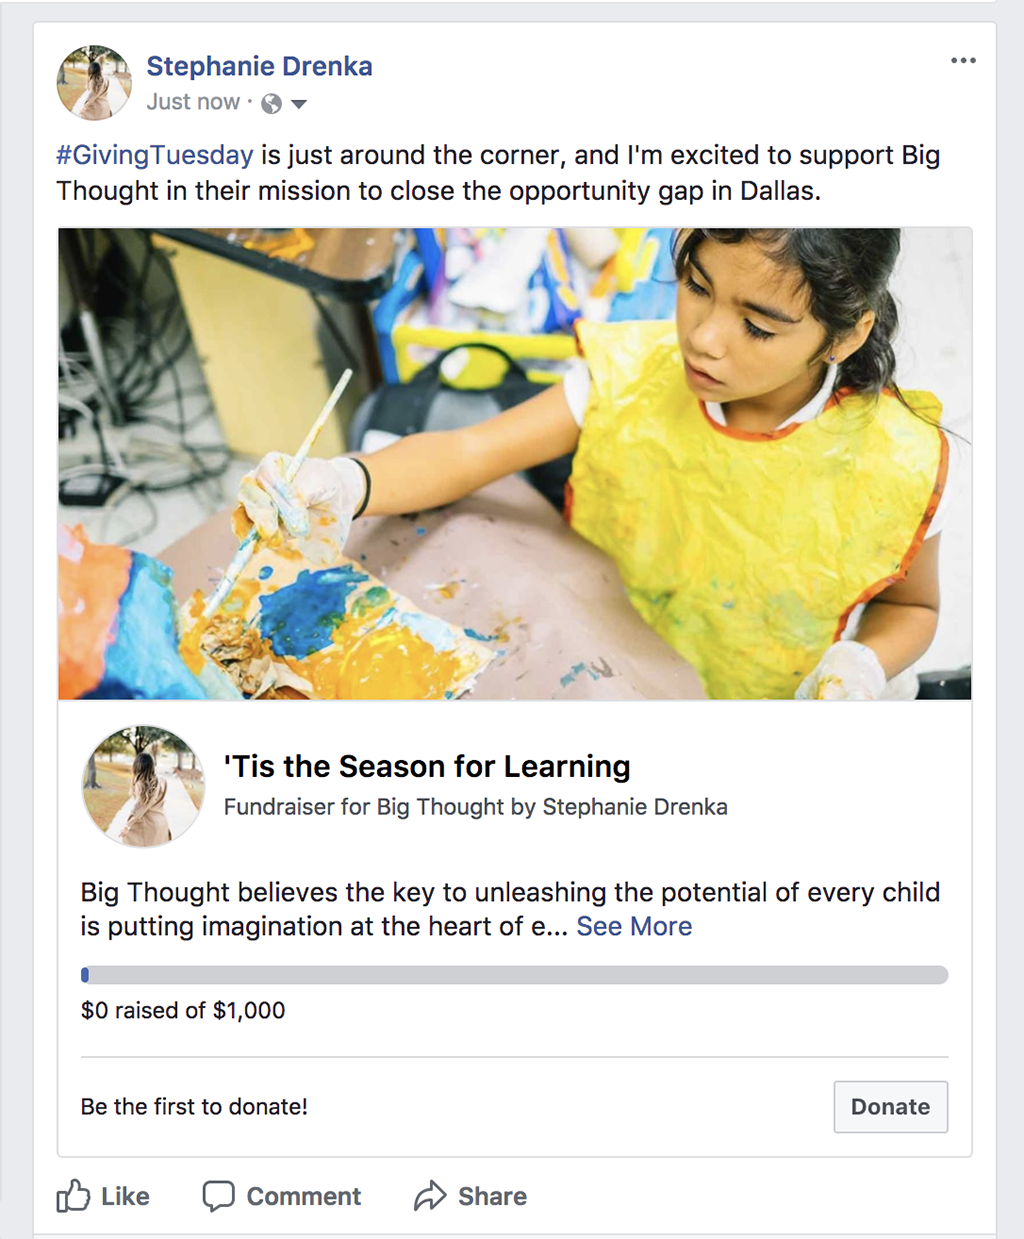 How to Create a Facebook Fundraiser for Big Thought